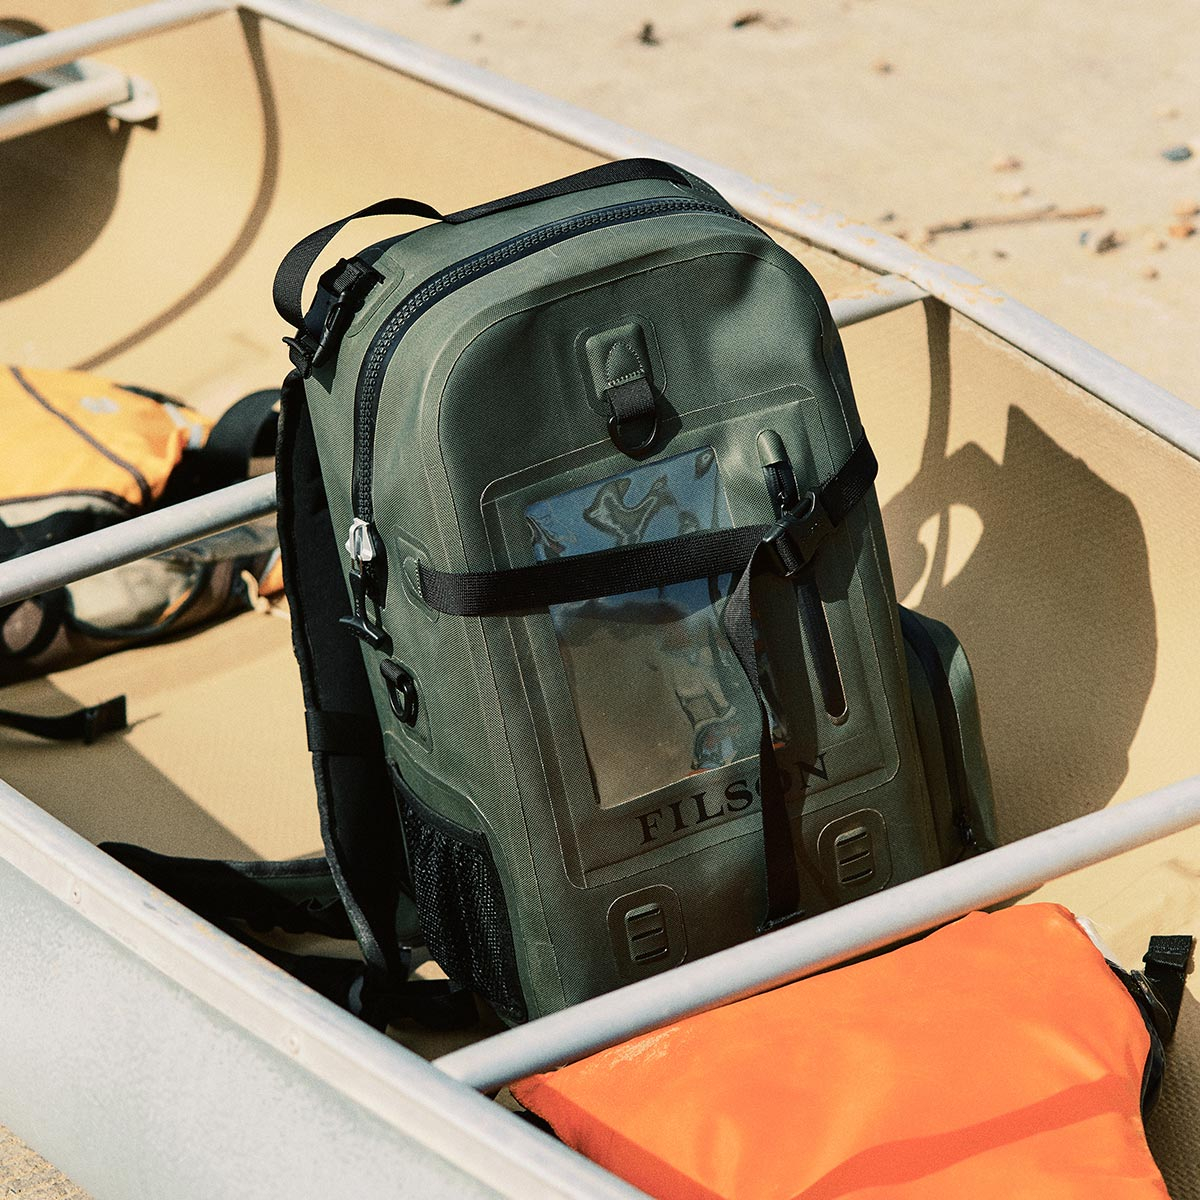 fully submersible and equipped with comfortable backpack straps